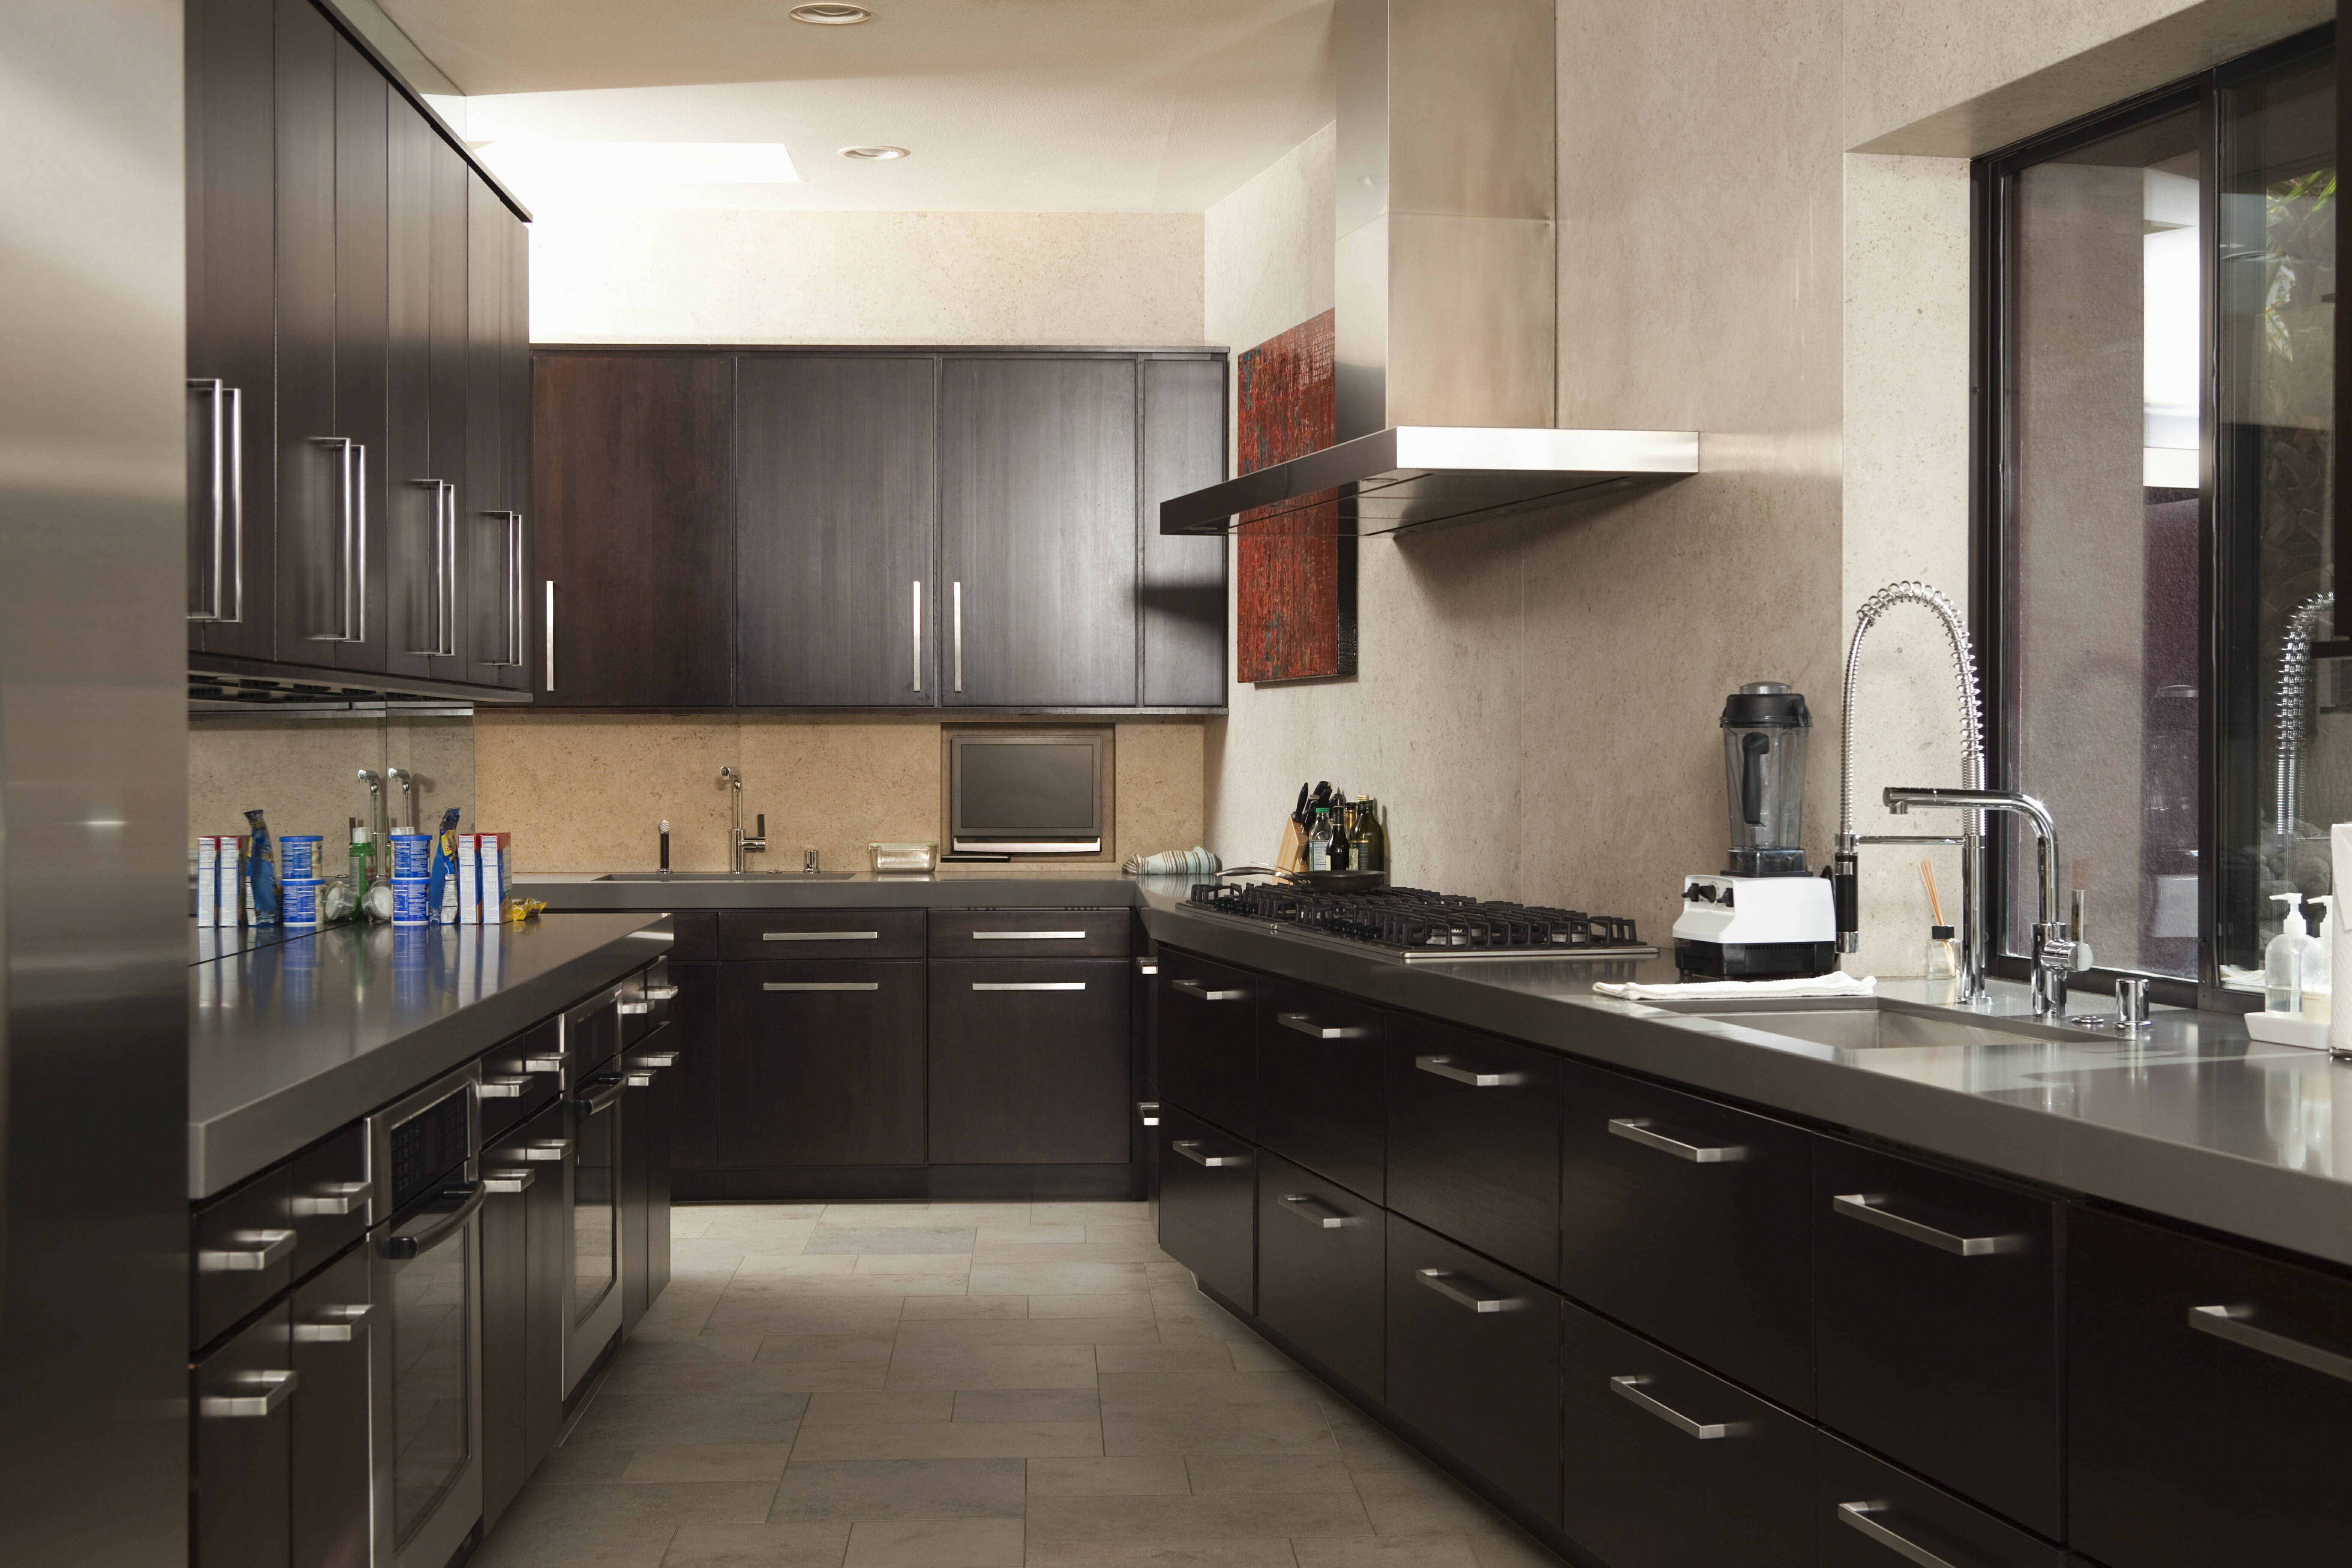 46 gorgeous kitchens with dark cabinets pictures kitchen floor cabinets Semi matte cabinets like these provide some light reflection but a lighter floor